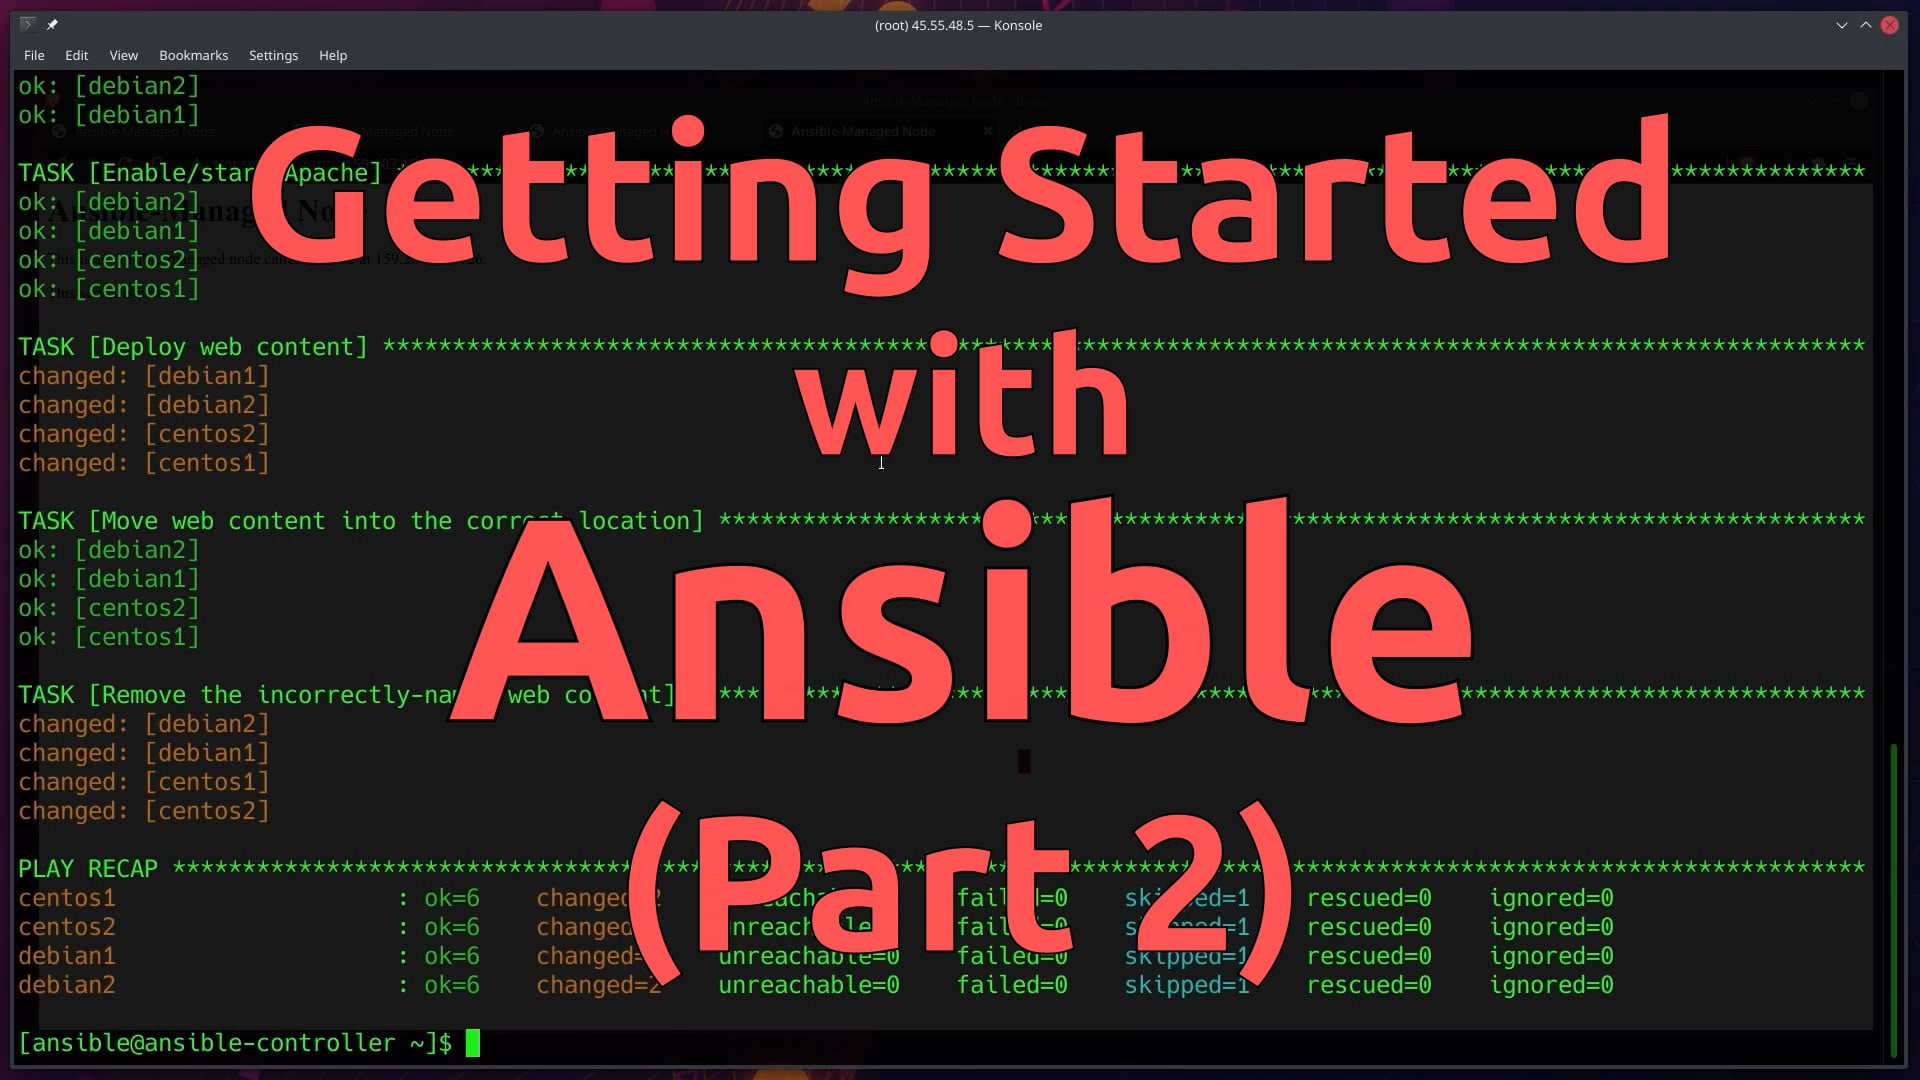 Getting Started with Ansible (Part 2)